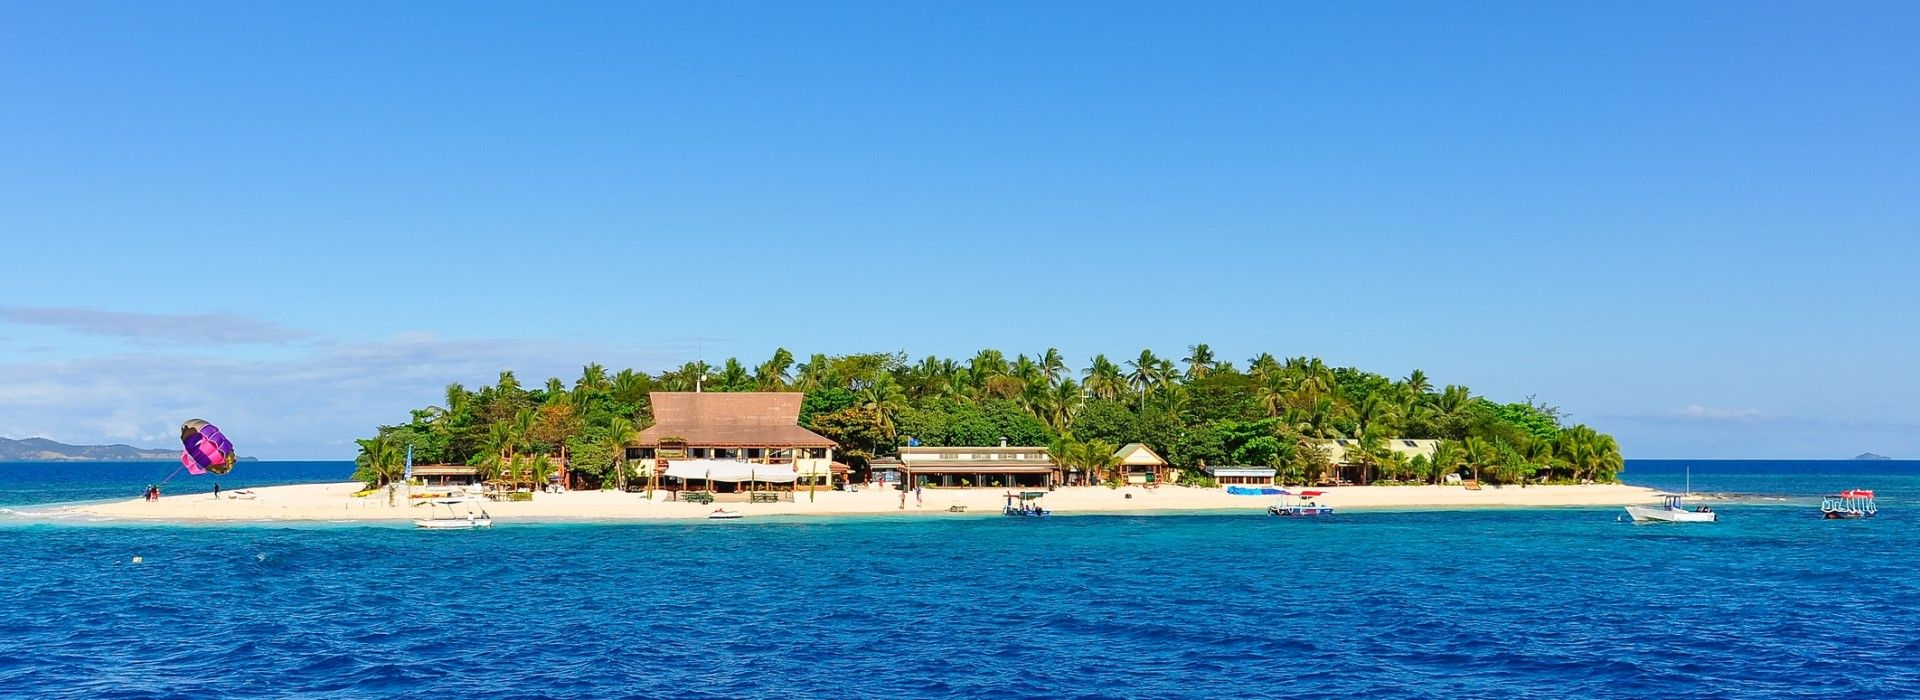 Self-drive or vehicle rental Tours in Oceania